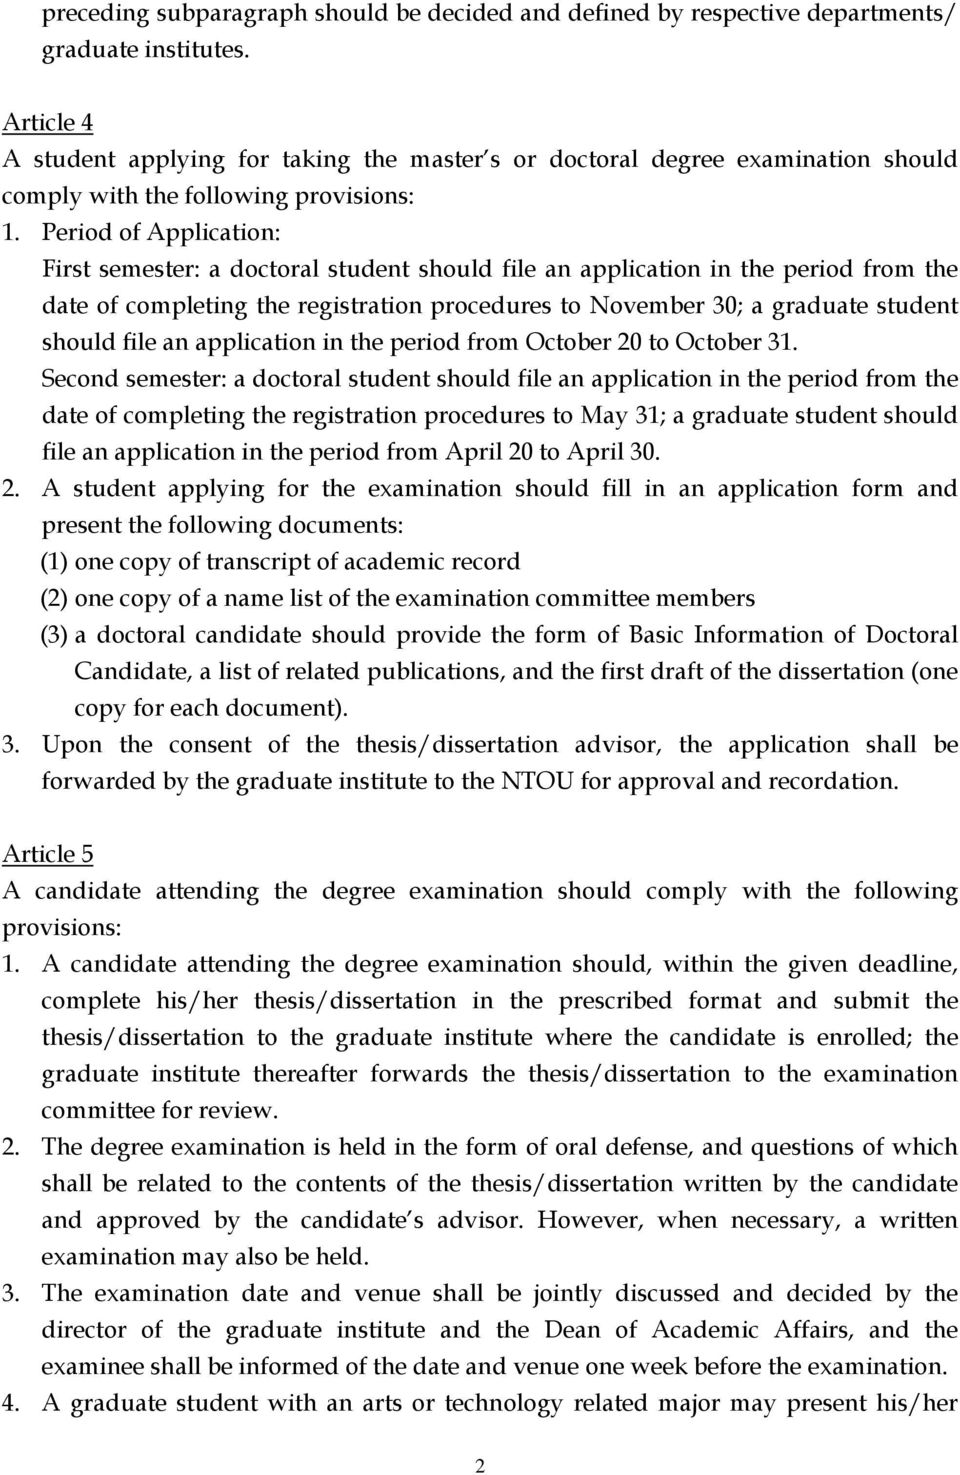 Period of Application: First semester: a doctoral student should file an application in the period from the date of completing the registration procedures to November 30; a graduate student should